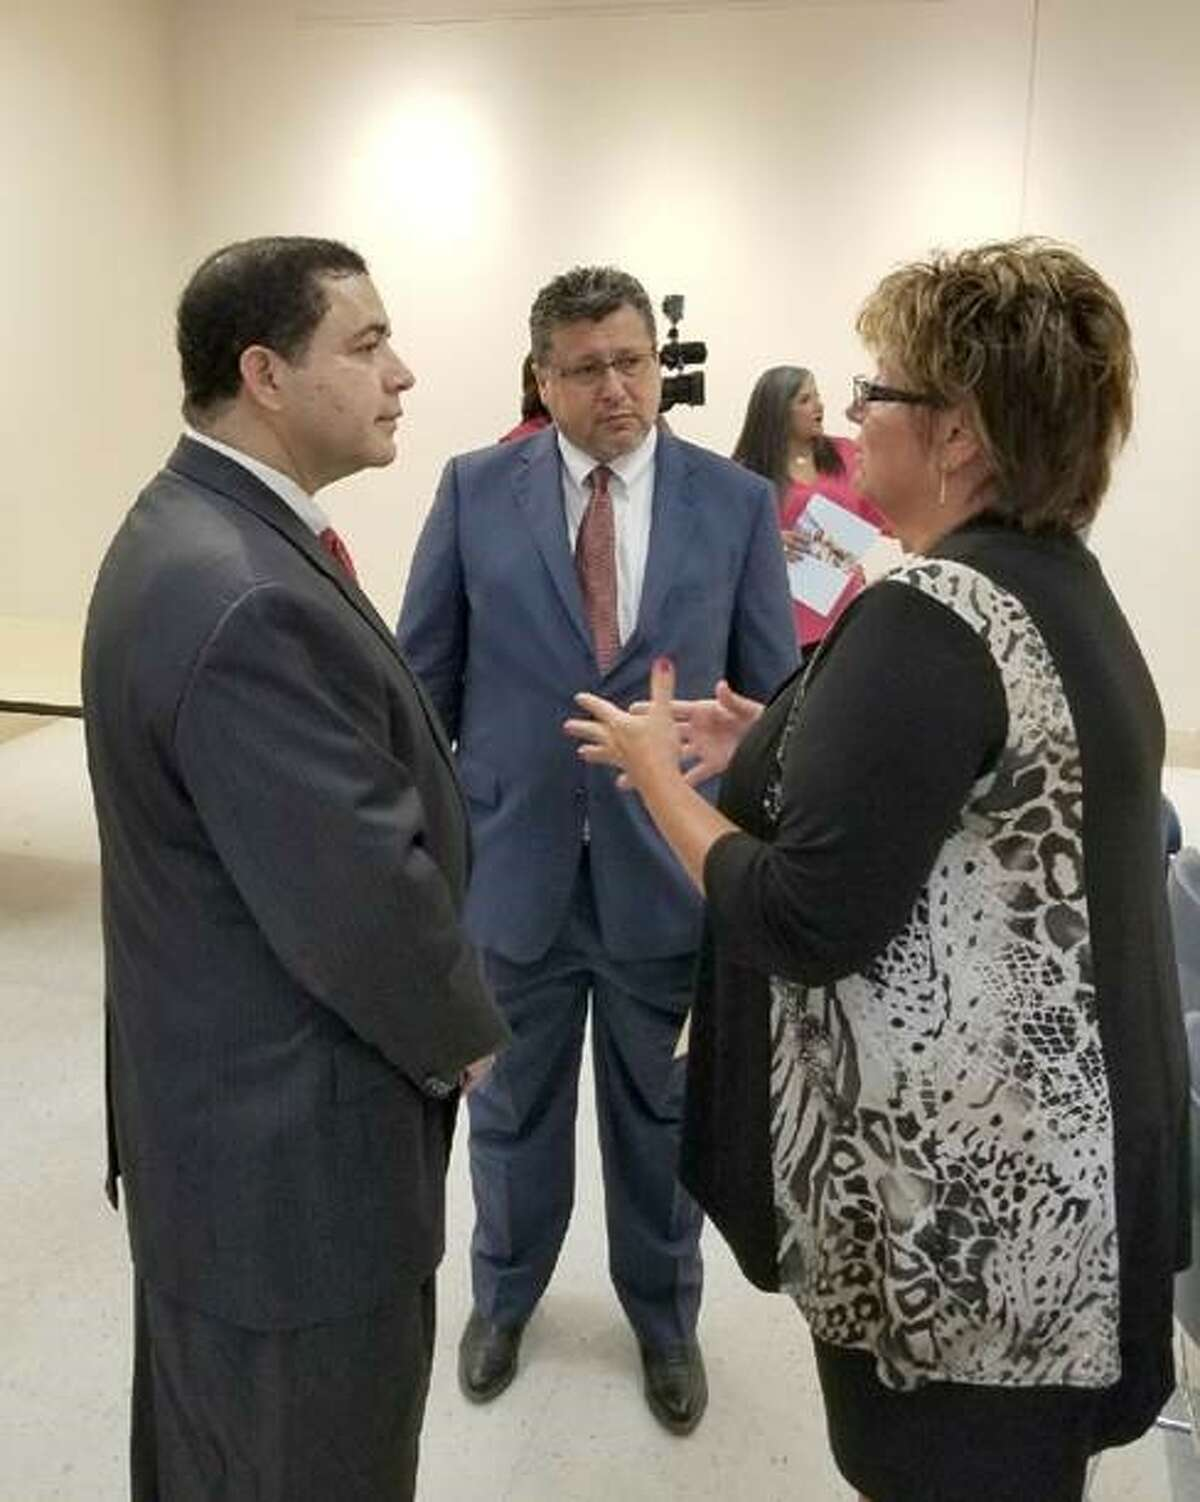 Congressman Cuellar (TX-28), left, discusses the importance counting everyone in our community for the 2020 Census with City Manager Horacio de Leon, center, and Vicki McIntire, Asst. Regional Director, U.S. Census Bureau-Denver Region, right, during the Laredo Road to 2020: How Your Community Can Prepare workshop on Tuesday at the Laredo Public Library.